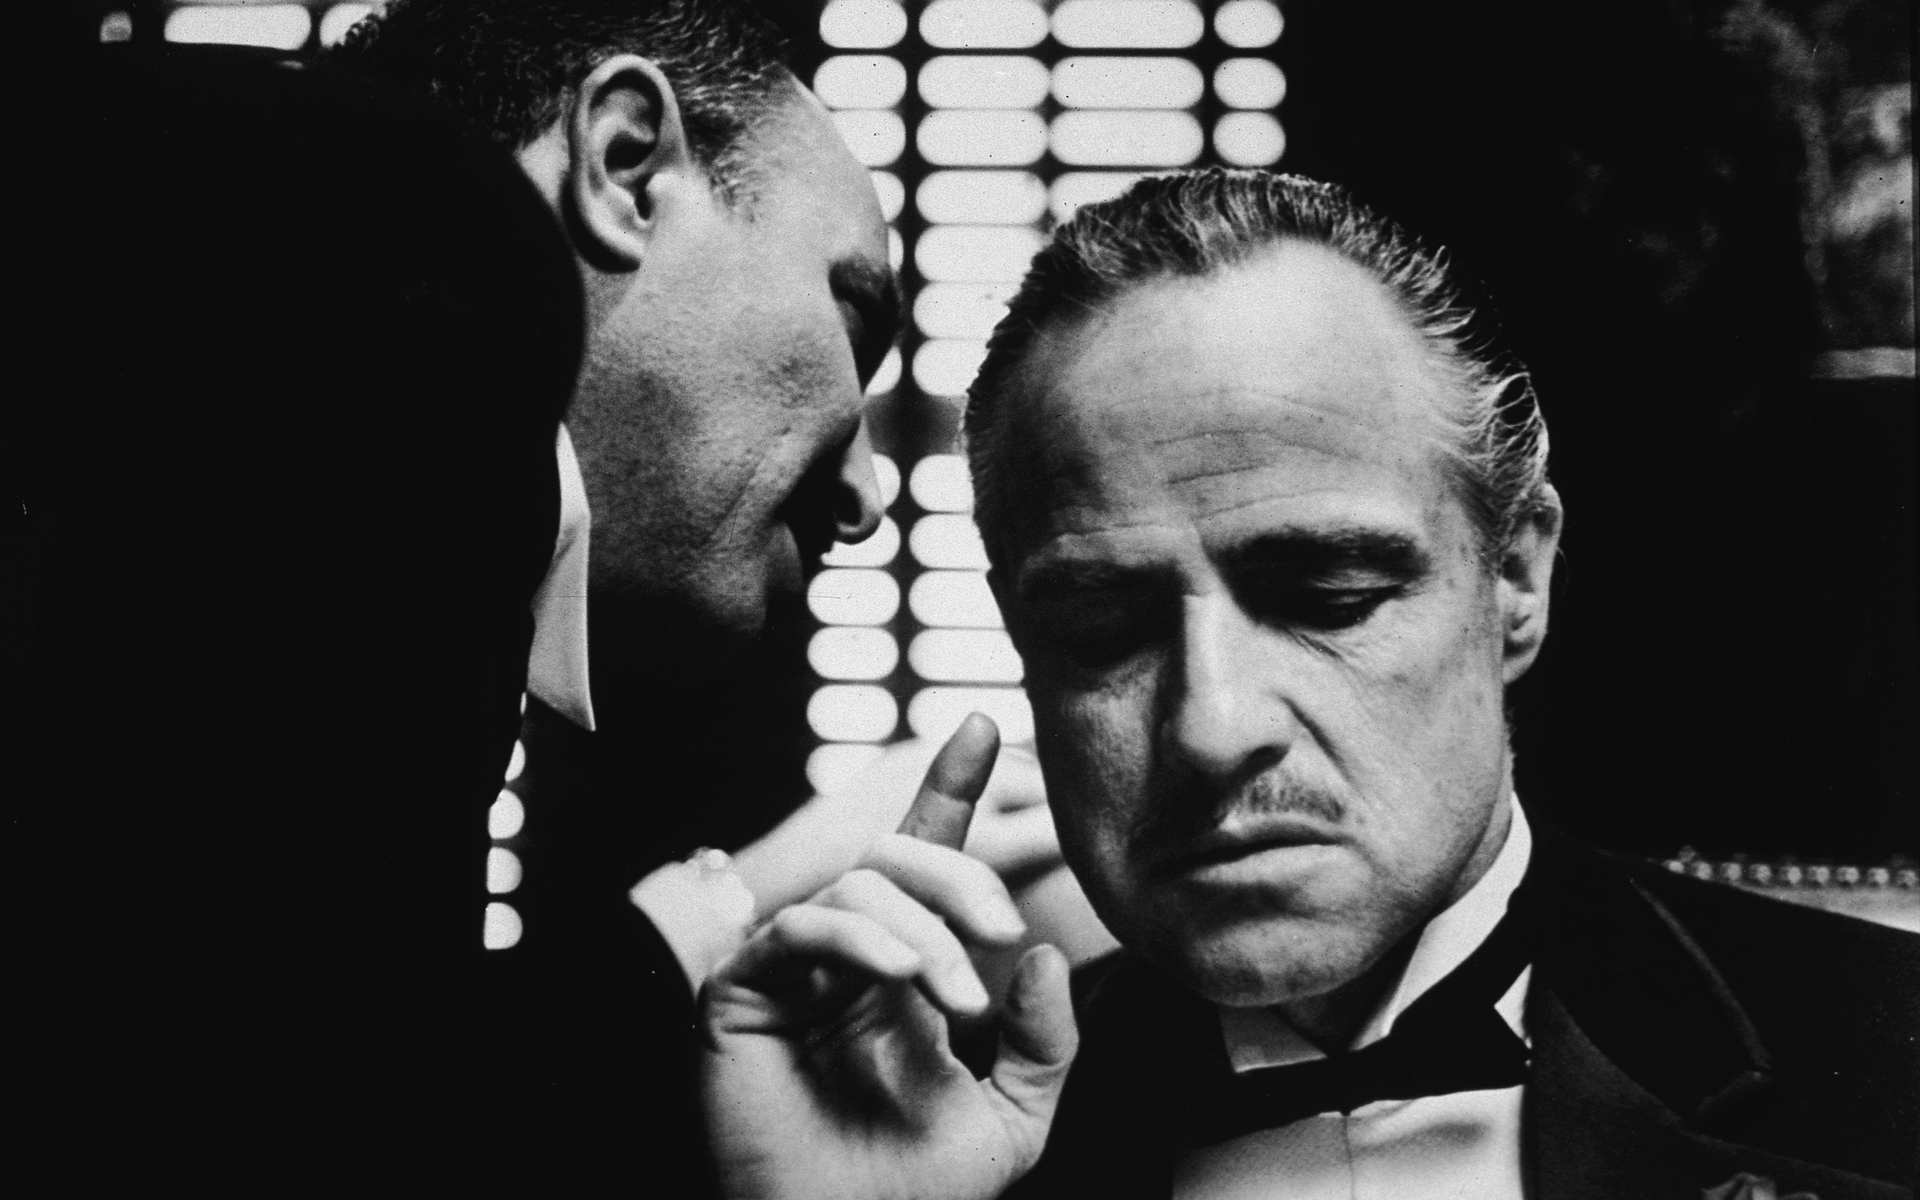 career planning advice tips from the godfather